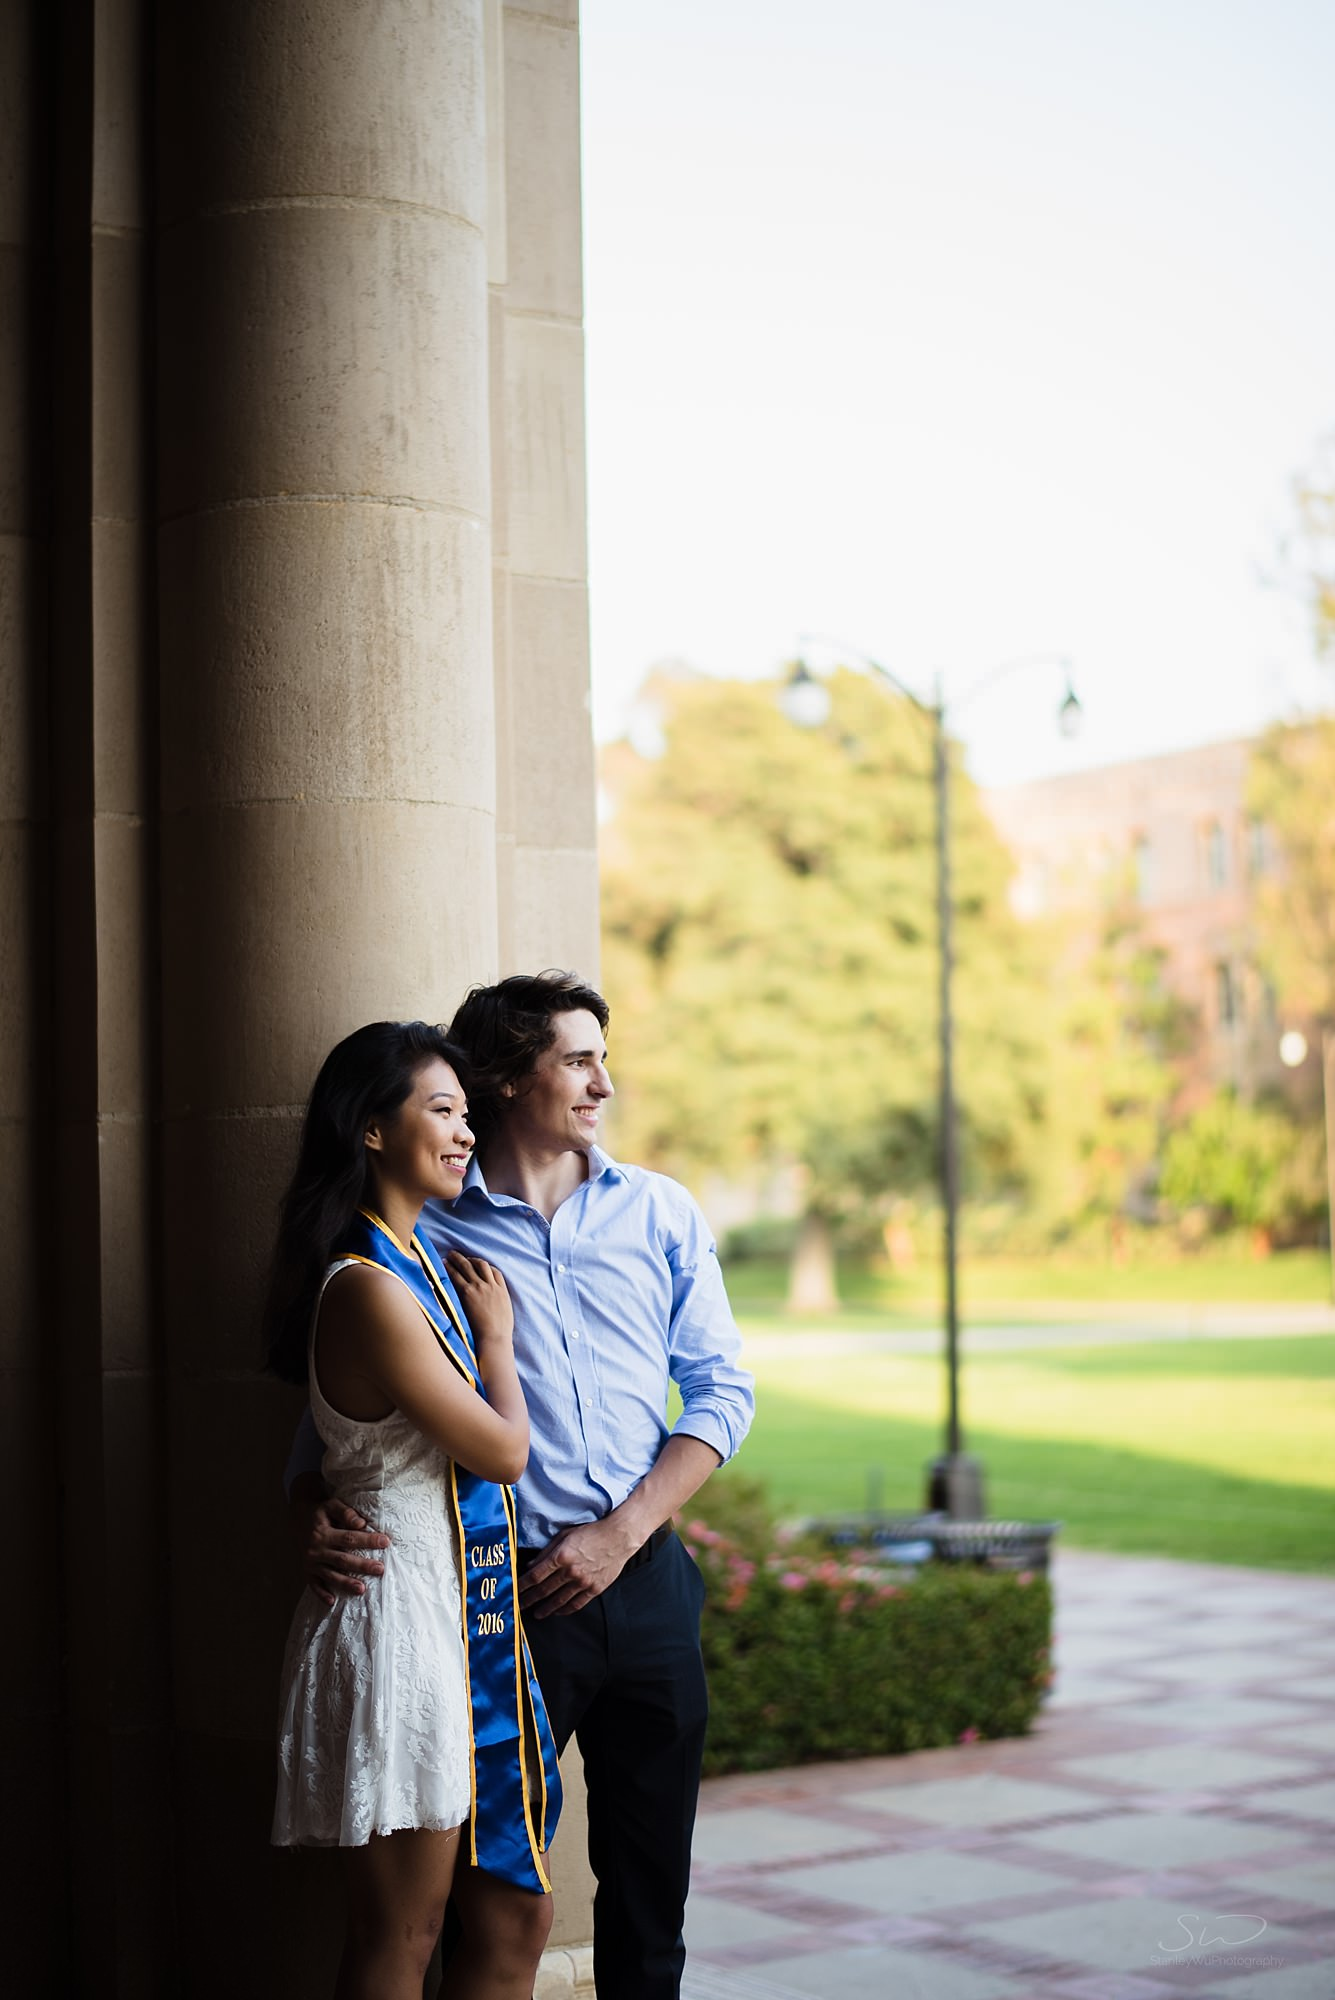 beautiful graduation senior portrait of a couple sidelit by epic light at ucla in los angeles